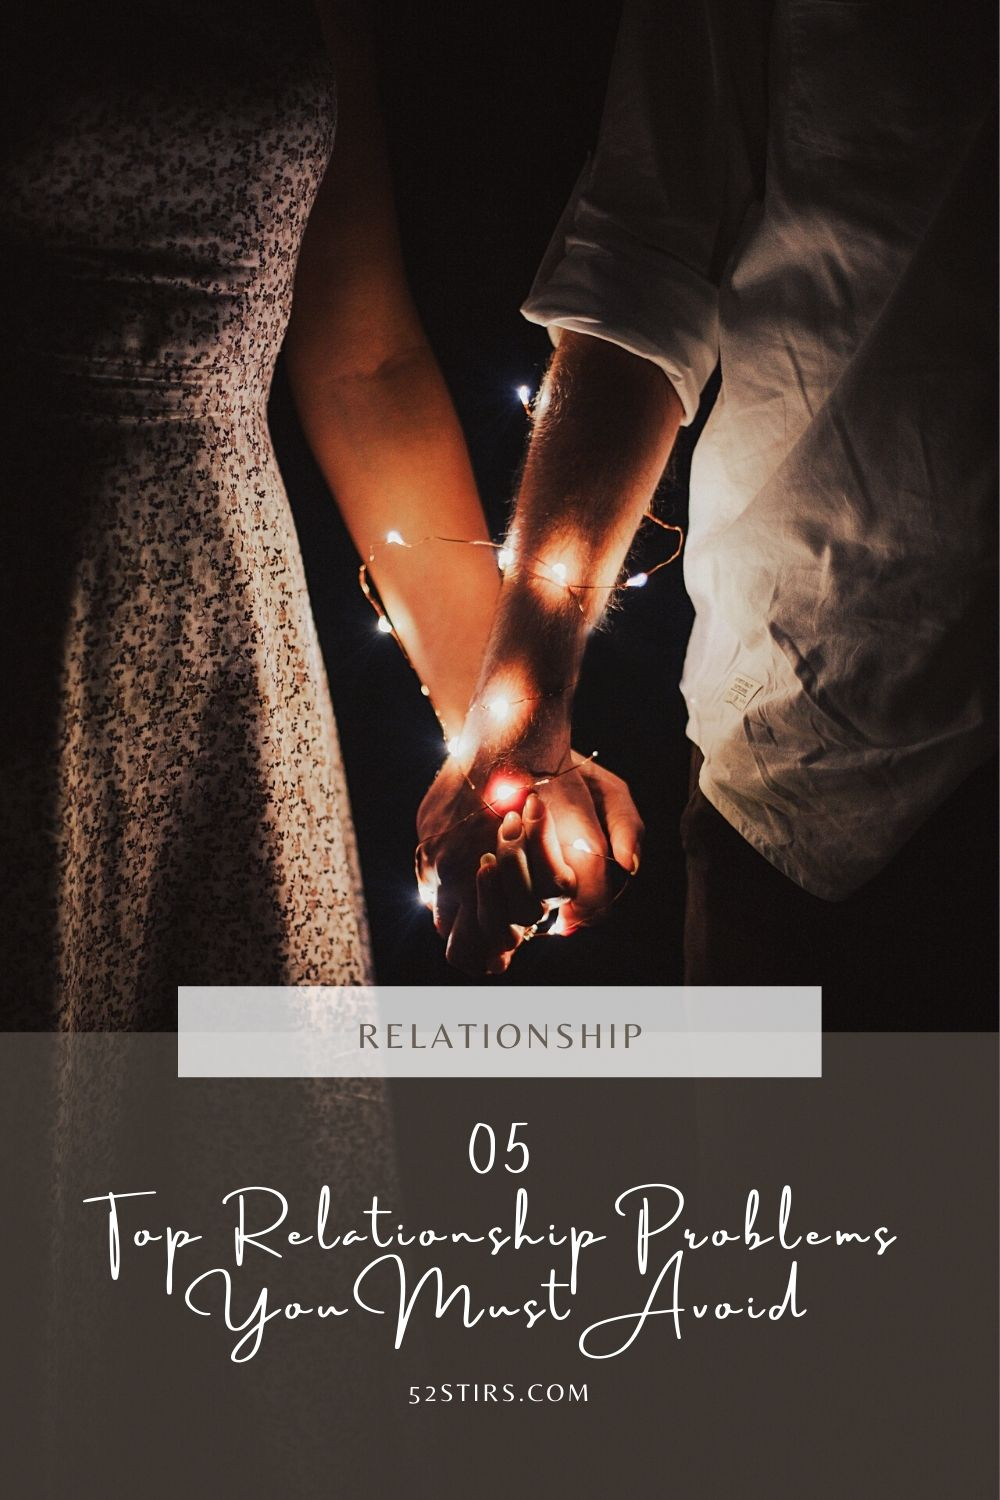 05 Top Relationship Problems You Must Avoid - 52Stirs.com